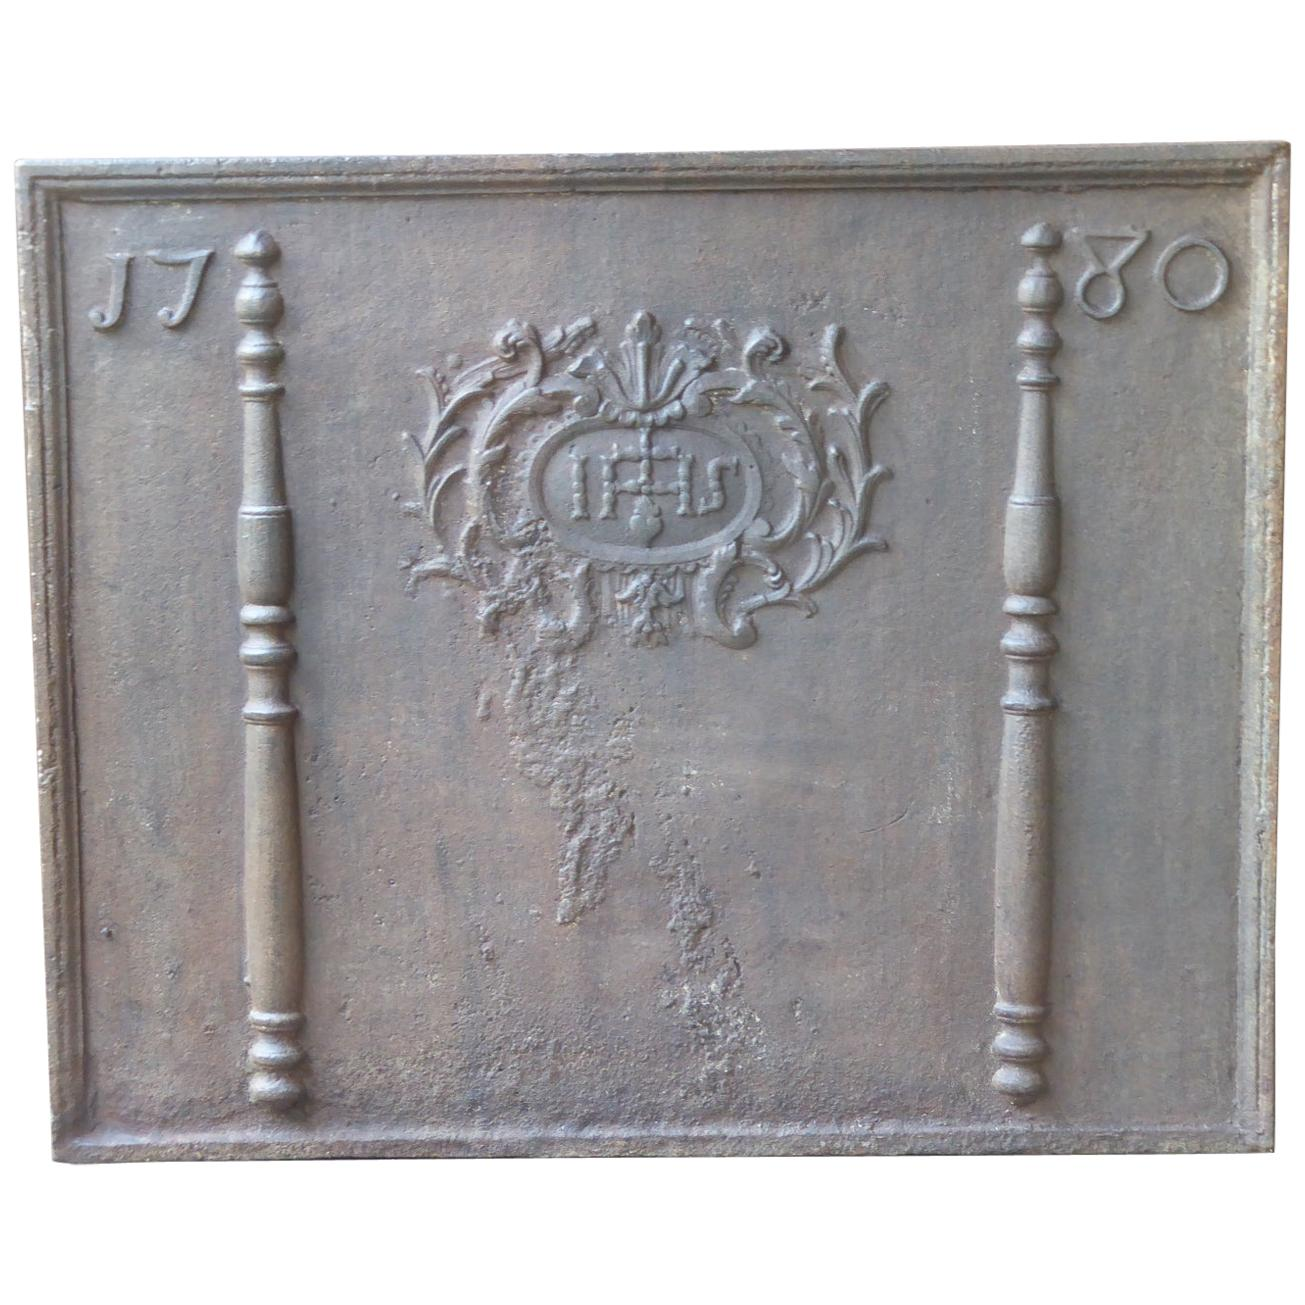 Large French Fireback with Pillars and IHS Monogram, Dated 1780